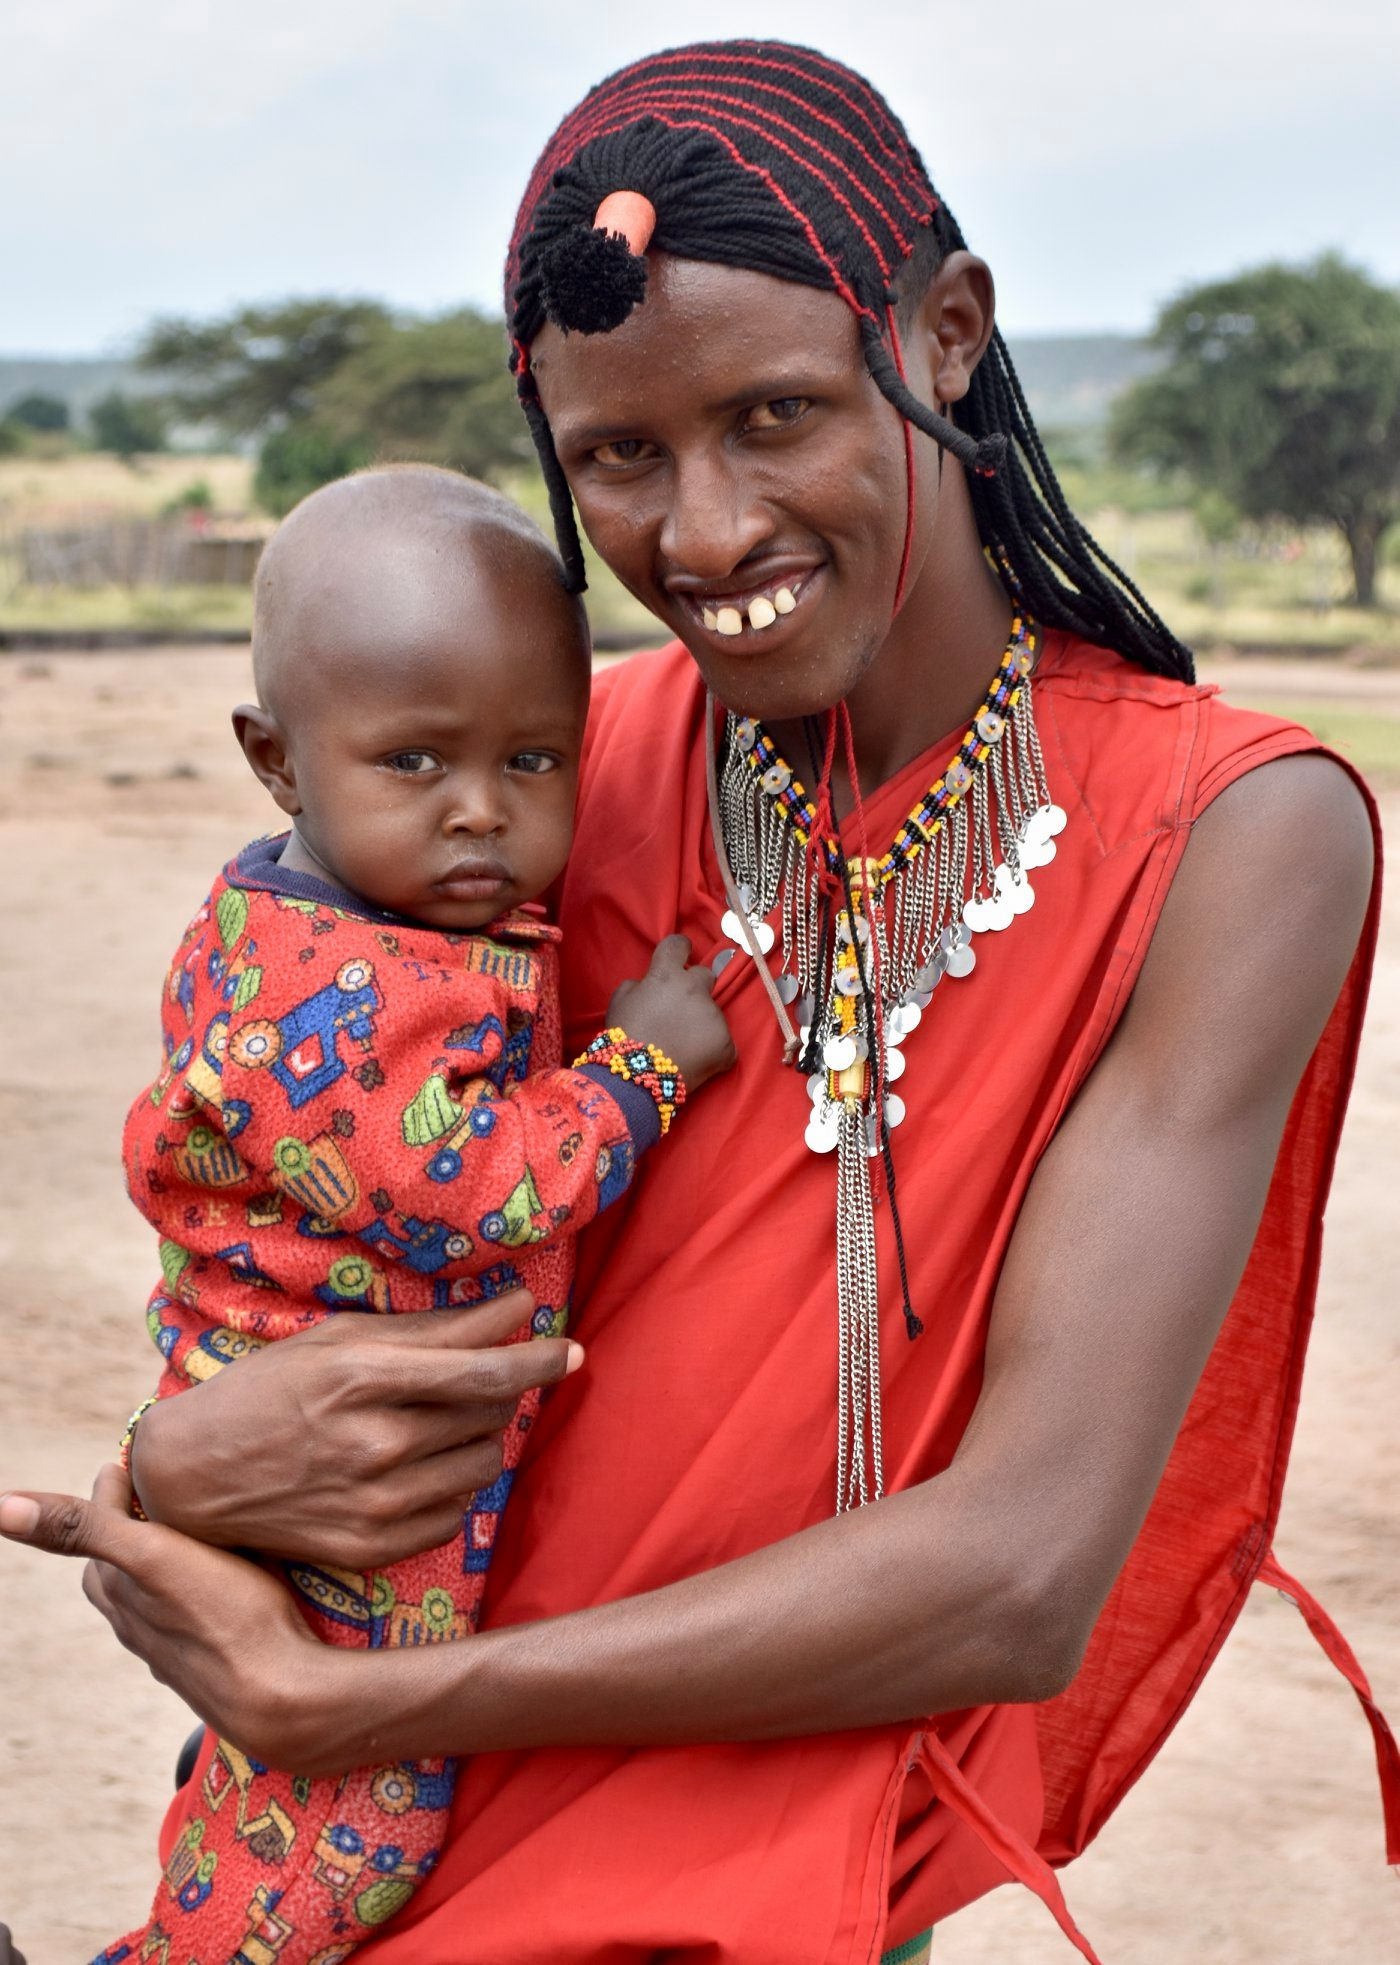 Maasai Mara man and child